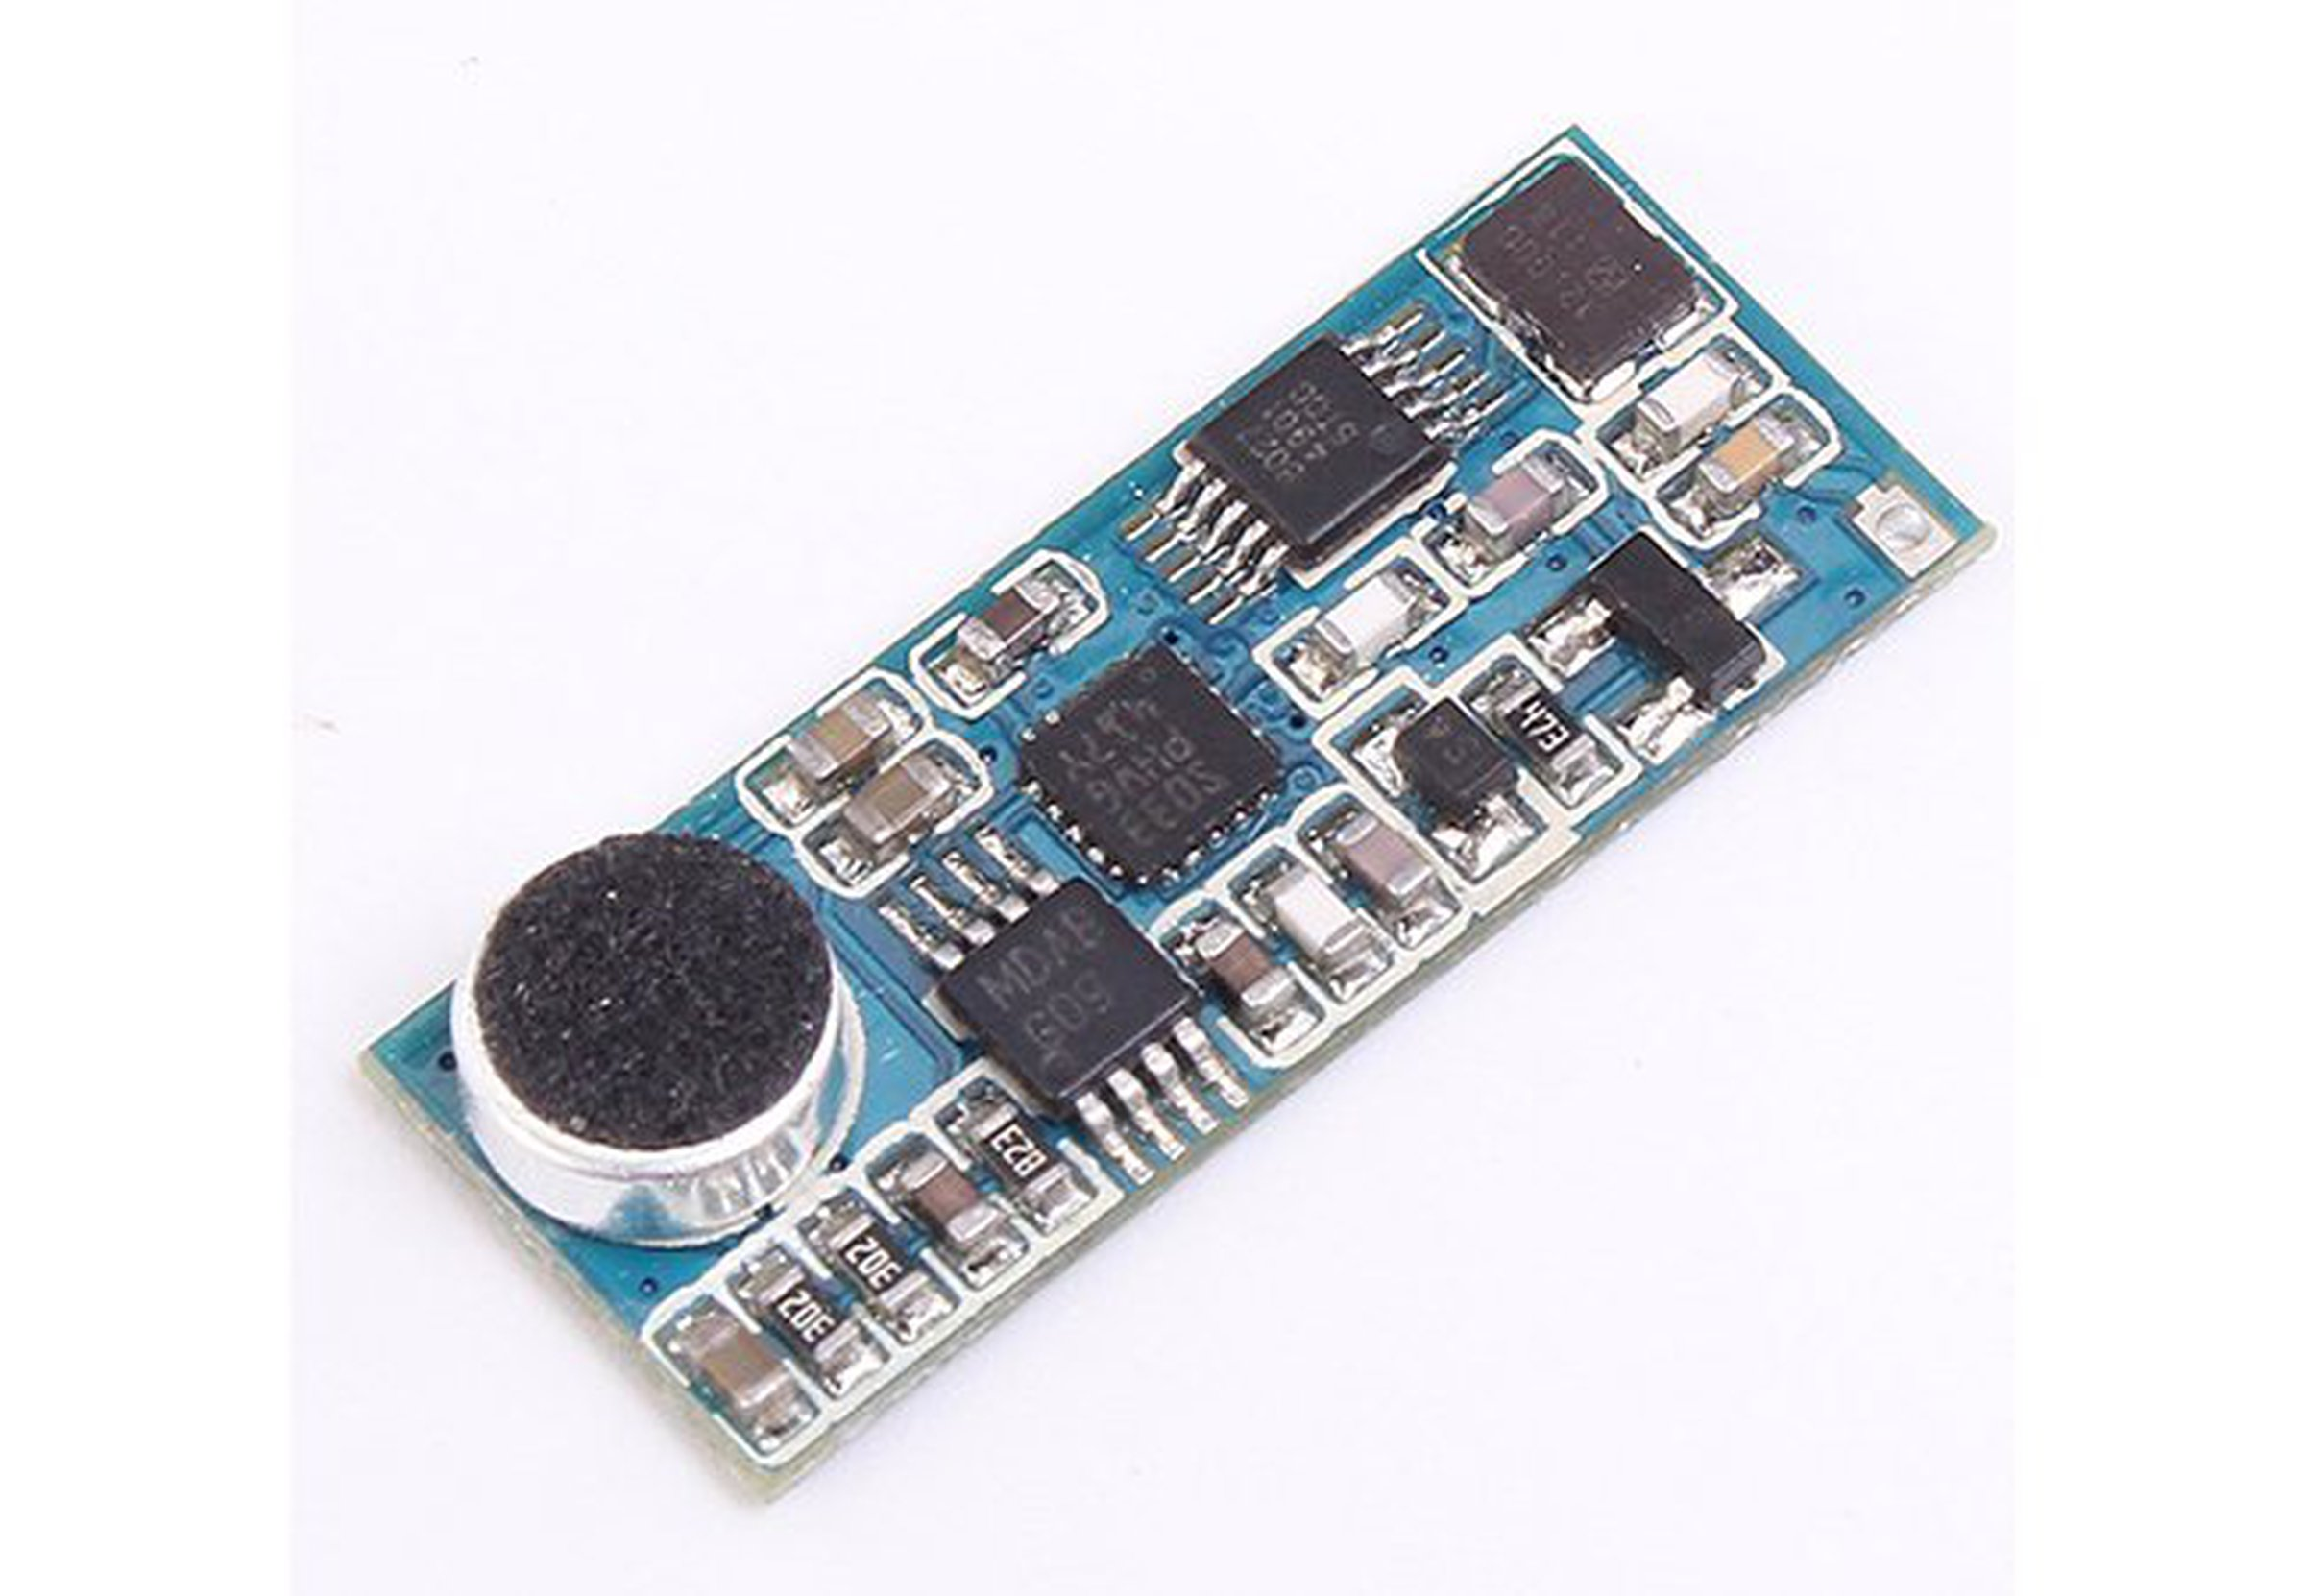 Mini Fm Wireless Microphone Transmitter10547 From Icstation On Tindie How To Build Opamp Vhf Transmitter 1